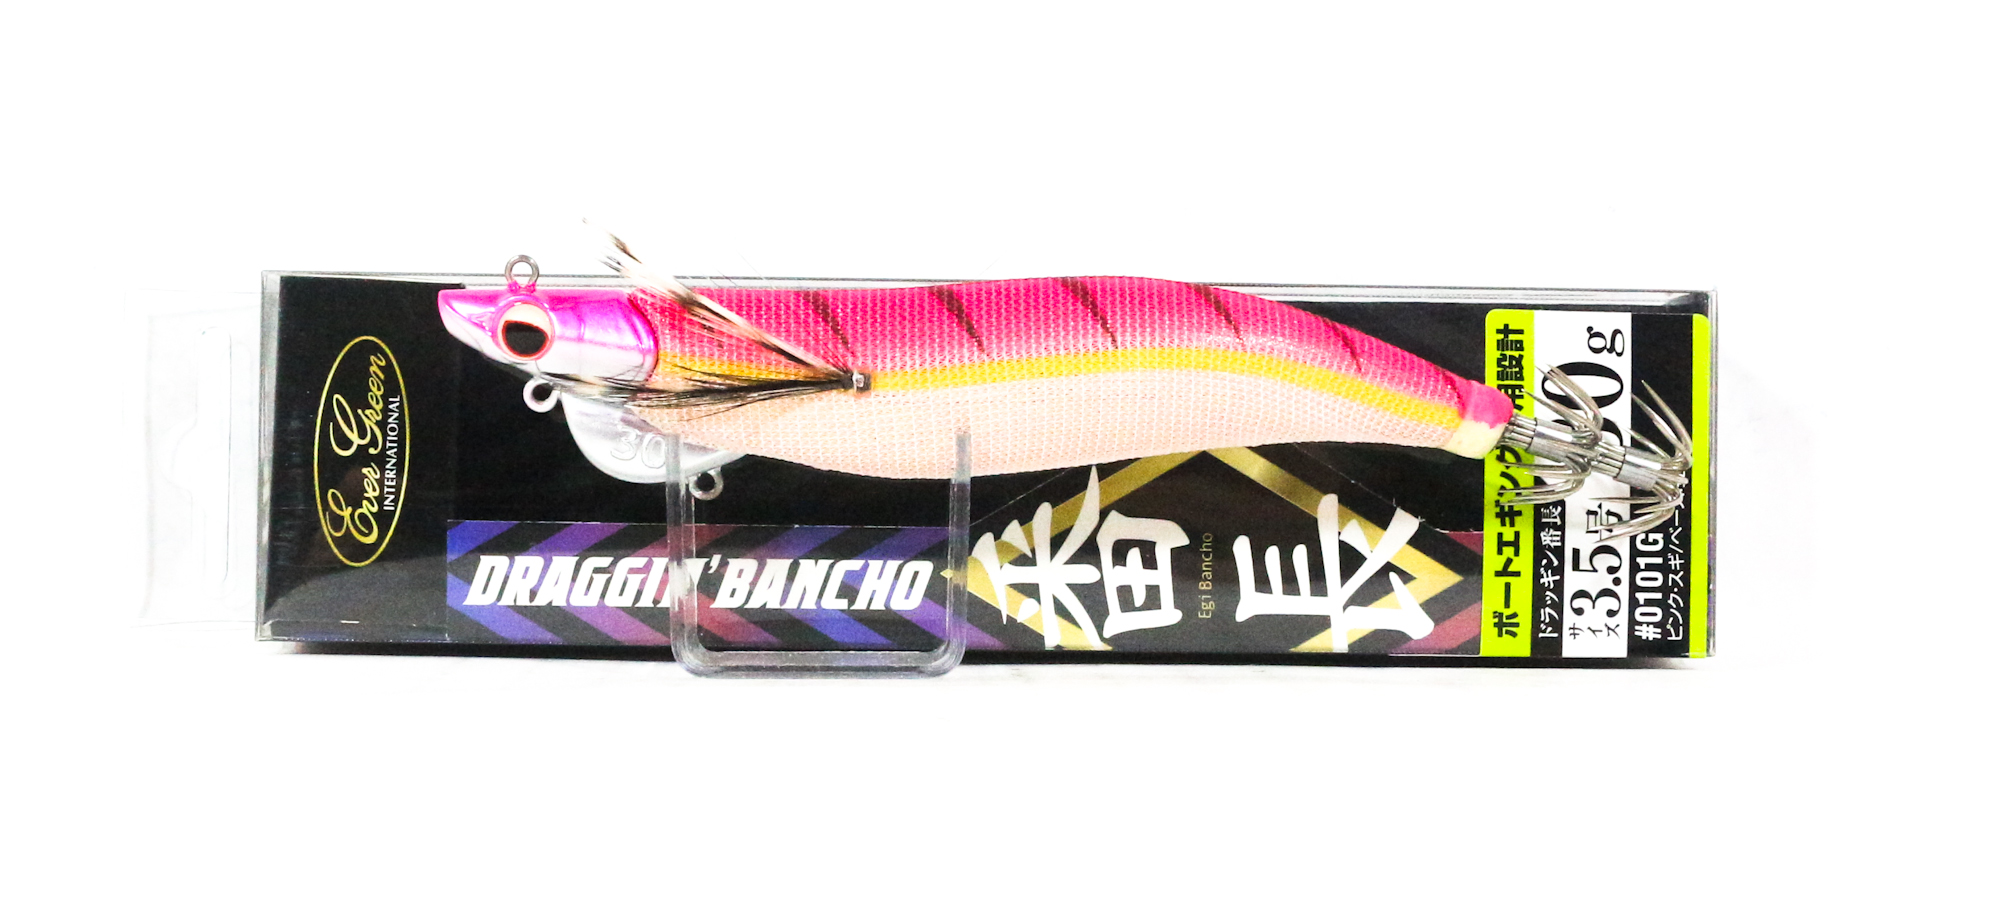 Evergreen Draggin Bancho Squid Jig Lure 3.5 30 grams 0101G (0497)